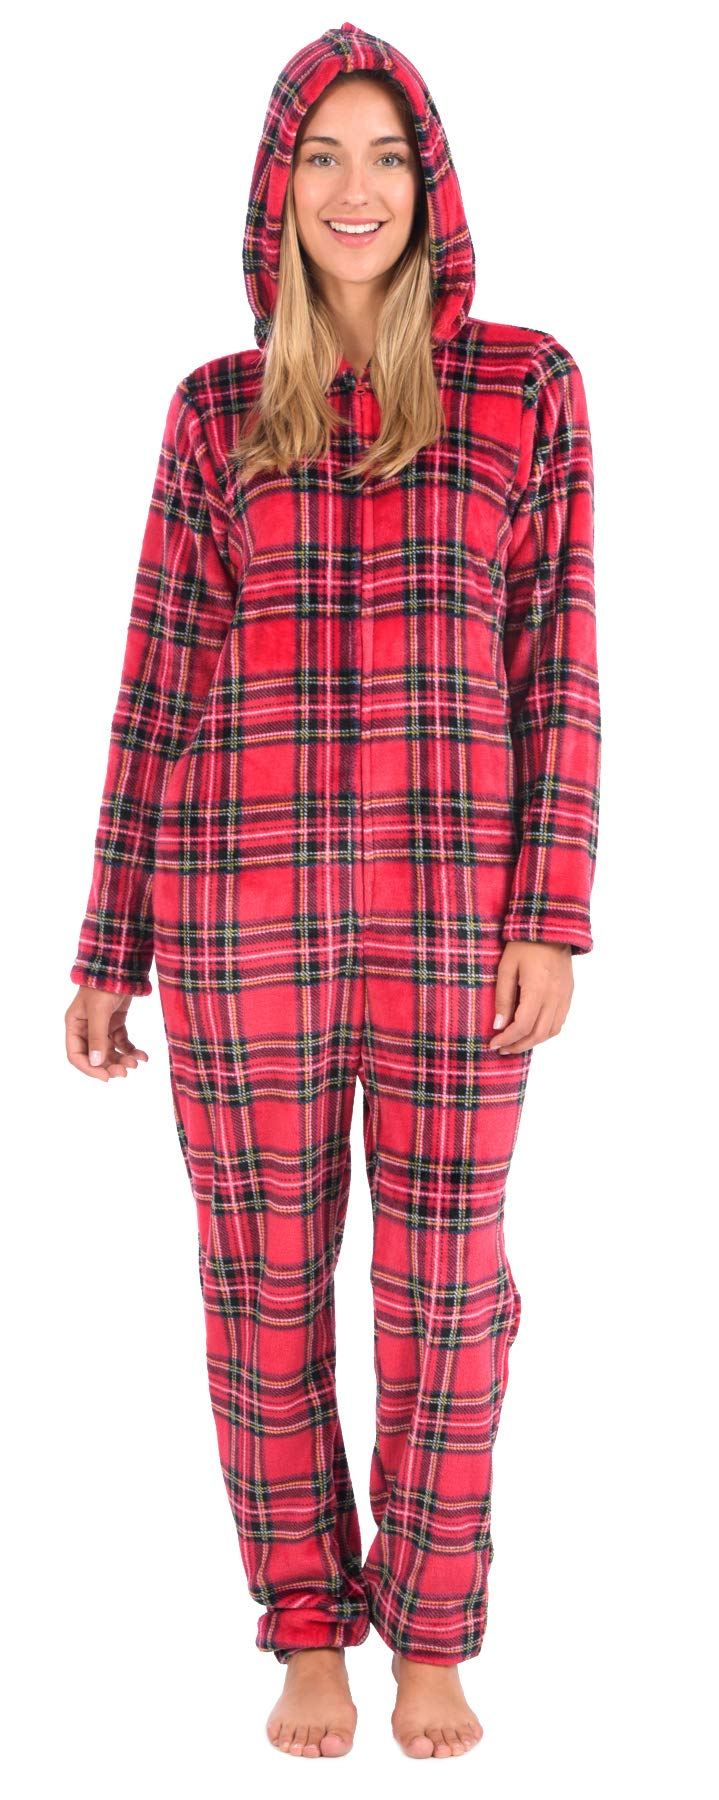 Body Candy Women's Plush Adult Animal Hood Onesie Pajama (Tartan Plaid, Small) by Body Candy Loungewear